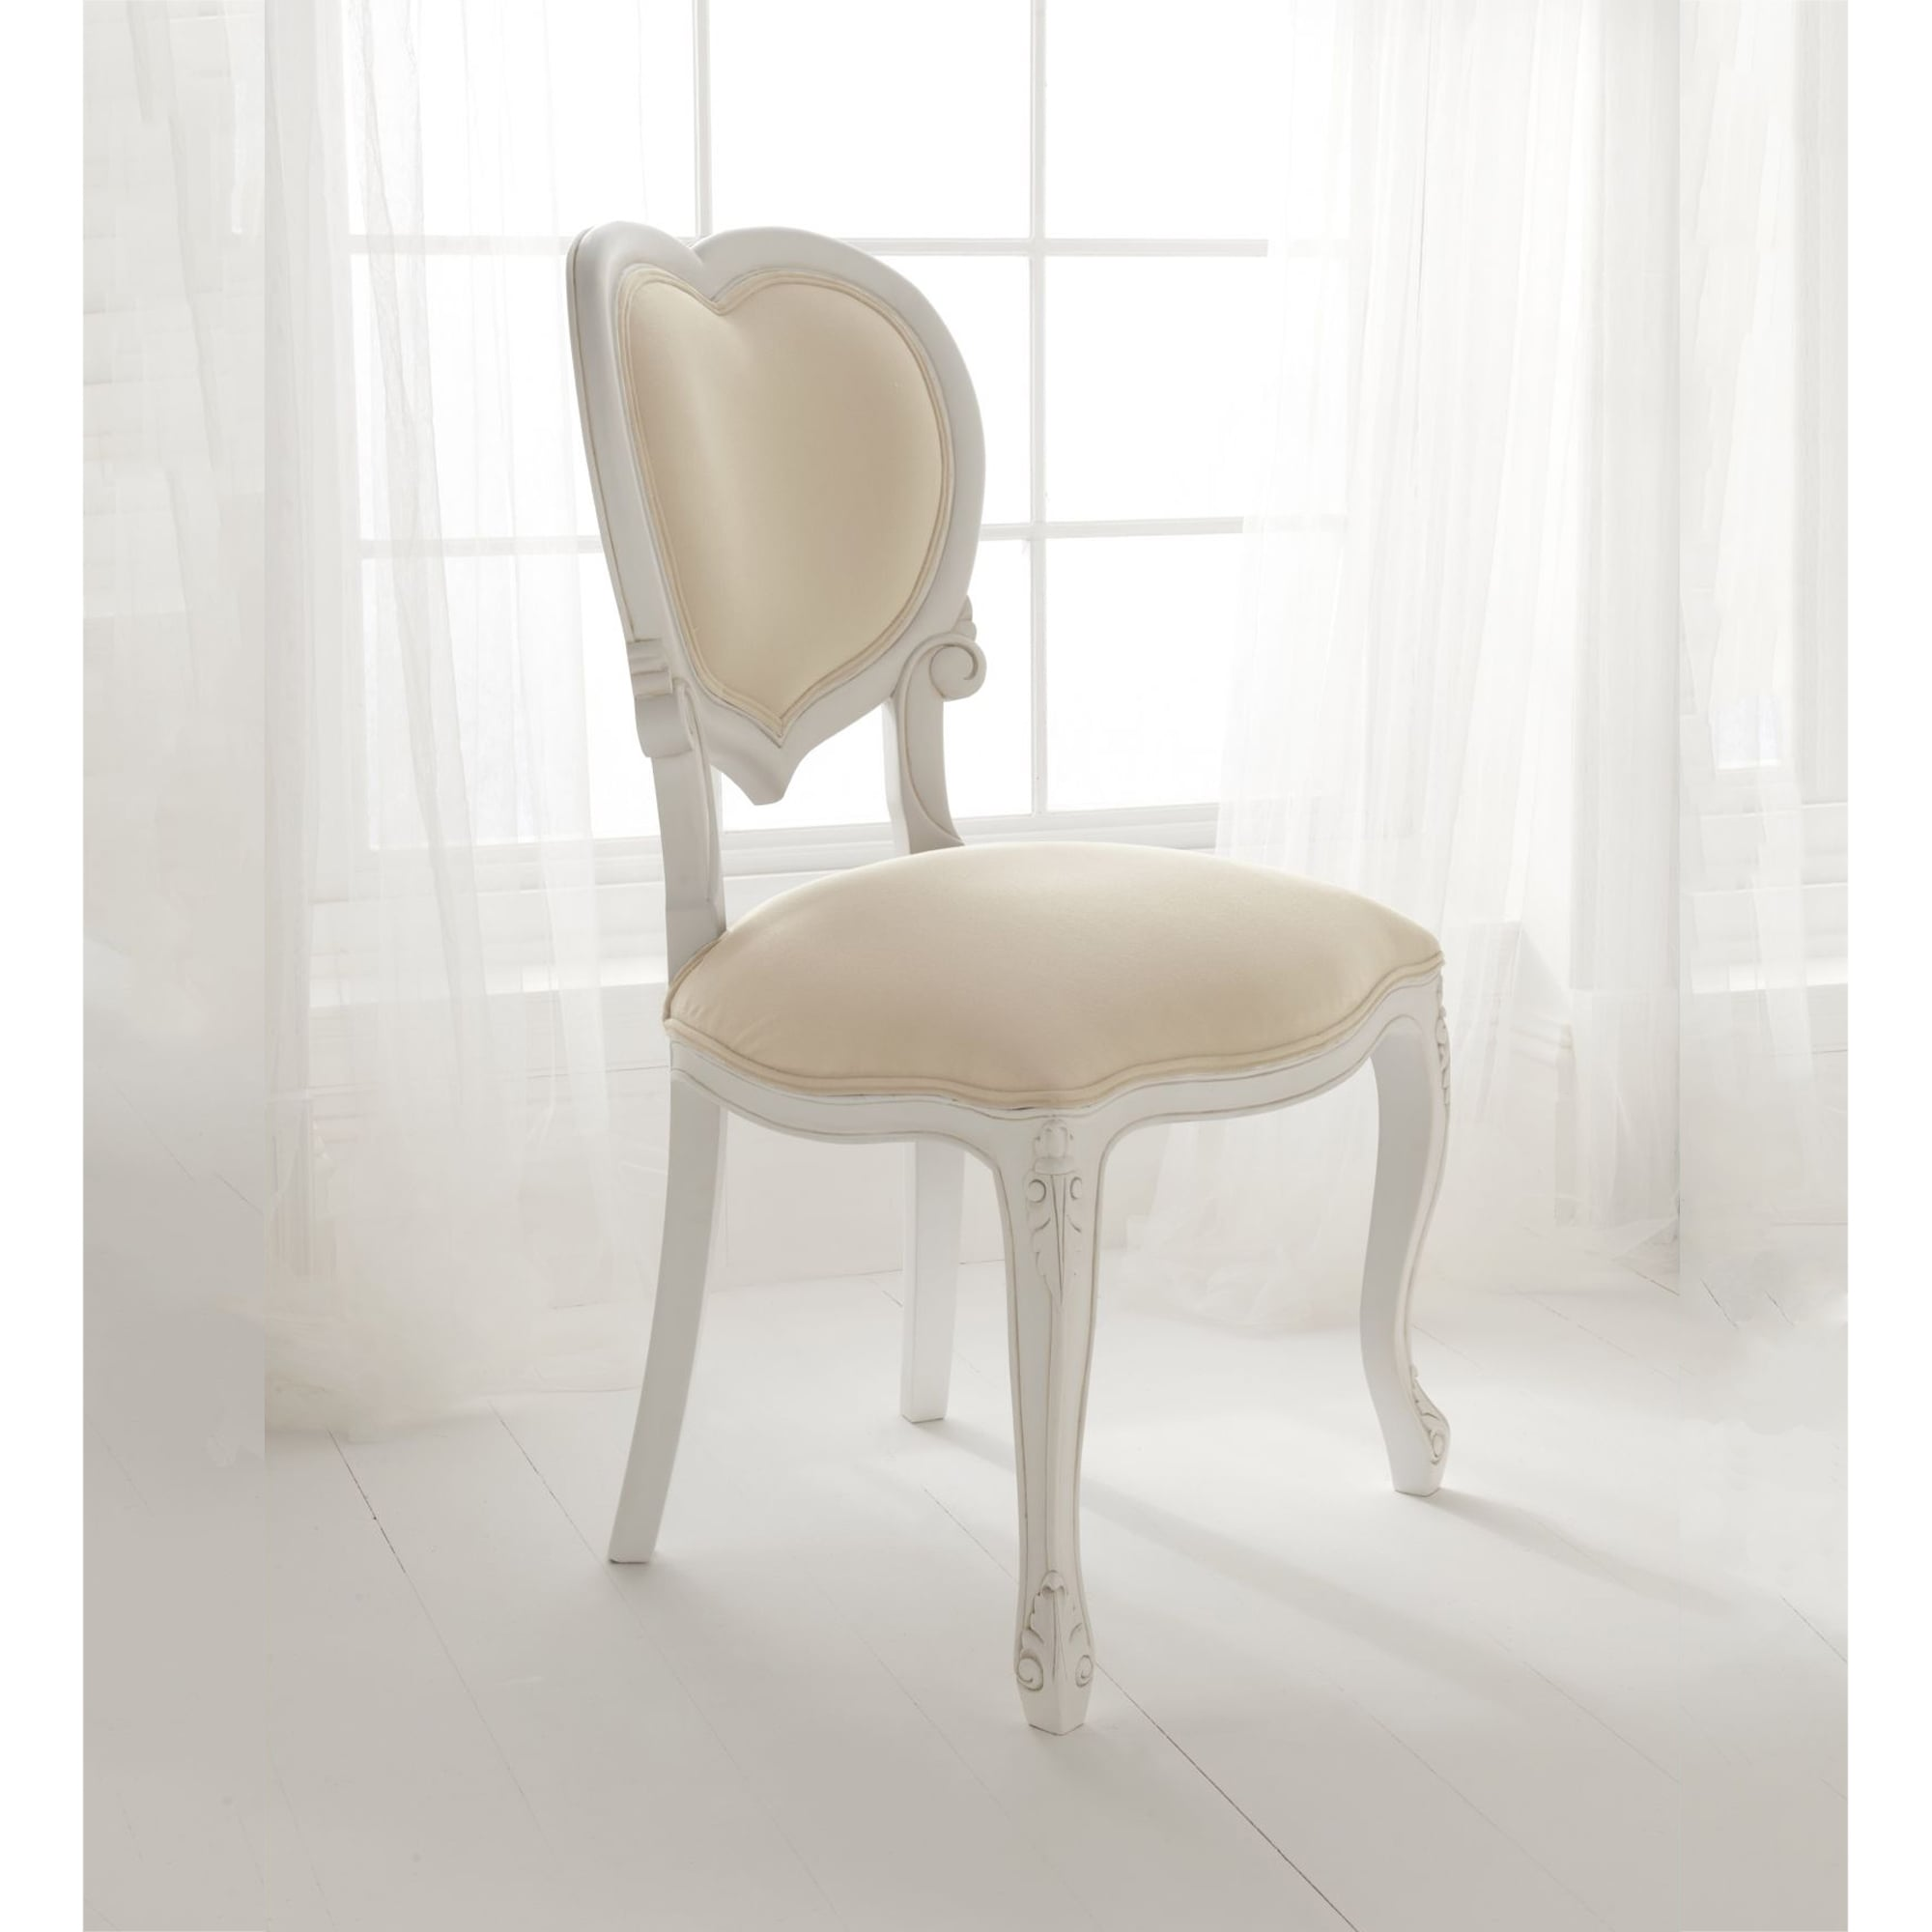 Paris Antique French Chair Works Well Alongside Our Shabby